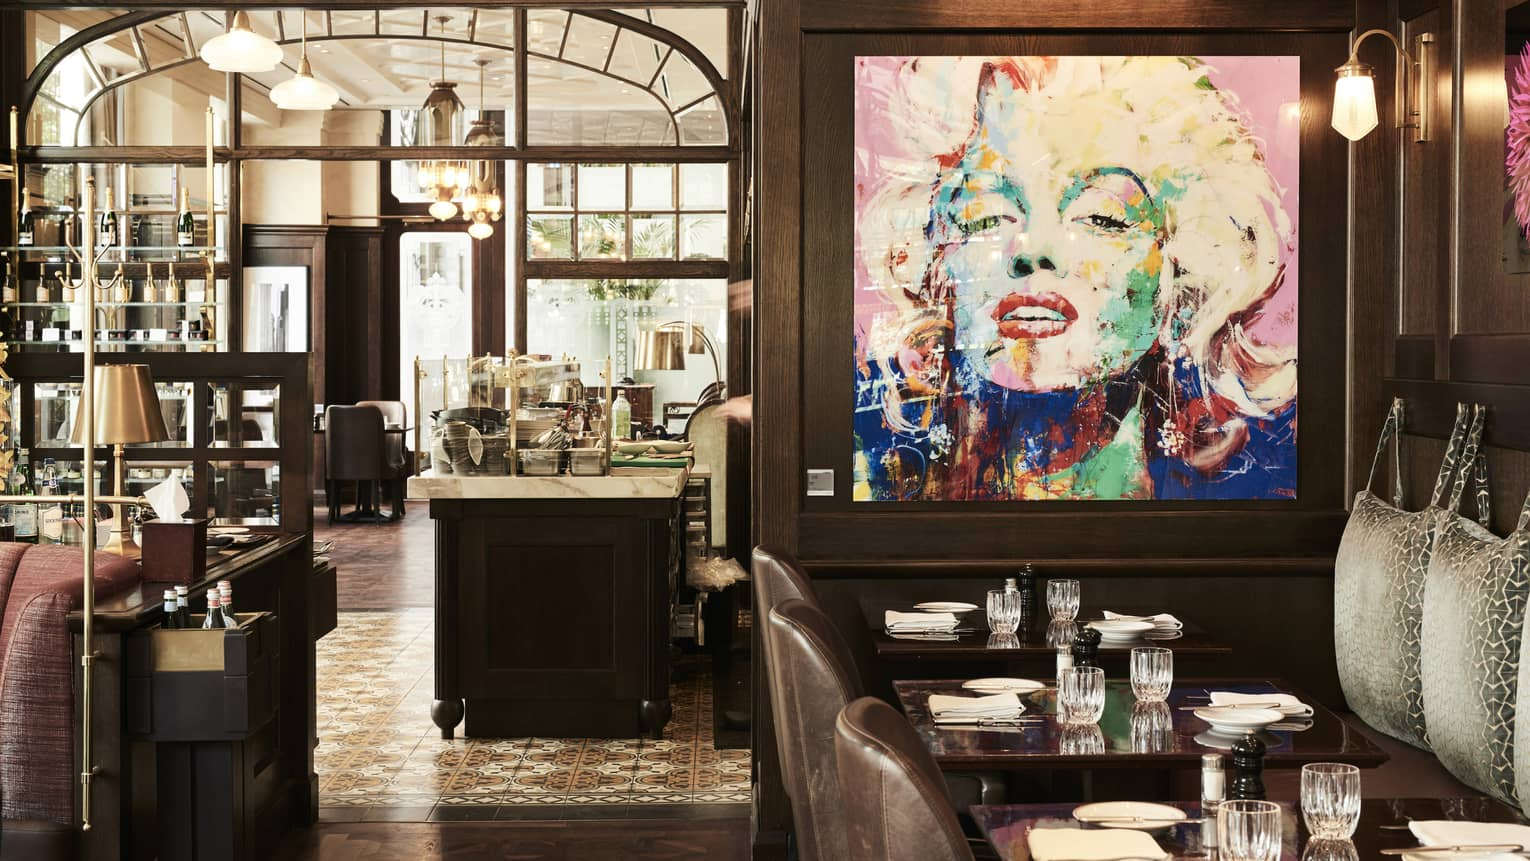 Tables in contemporary brasserie with large artwork of Marilyn Monroe